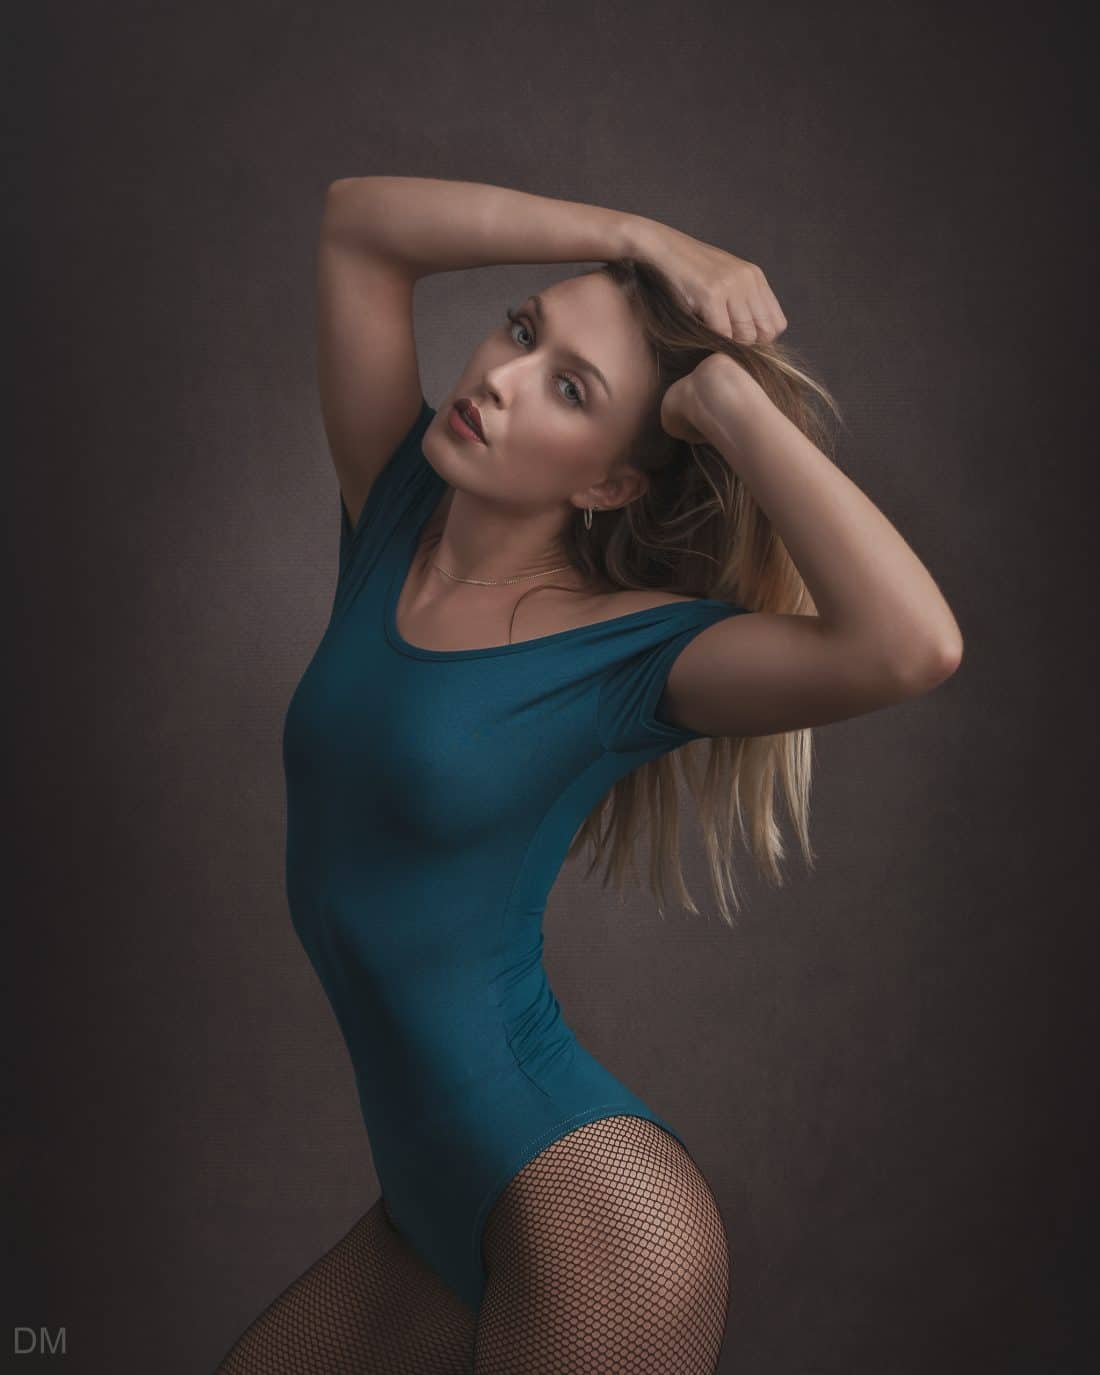 Photograph of a French model wearing a blue bodysuit